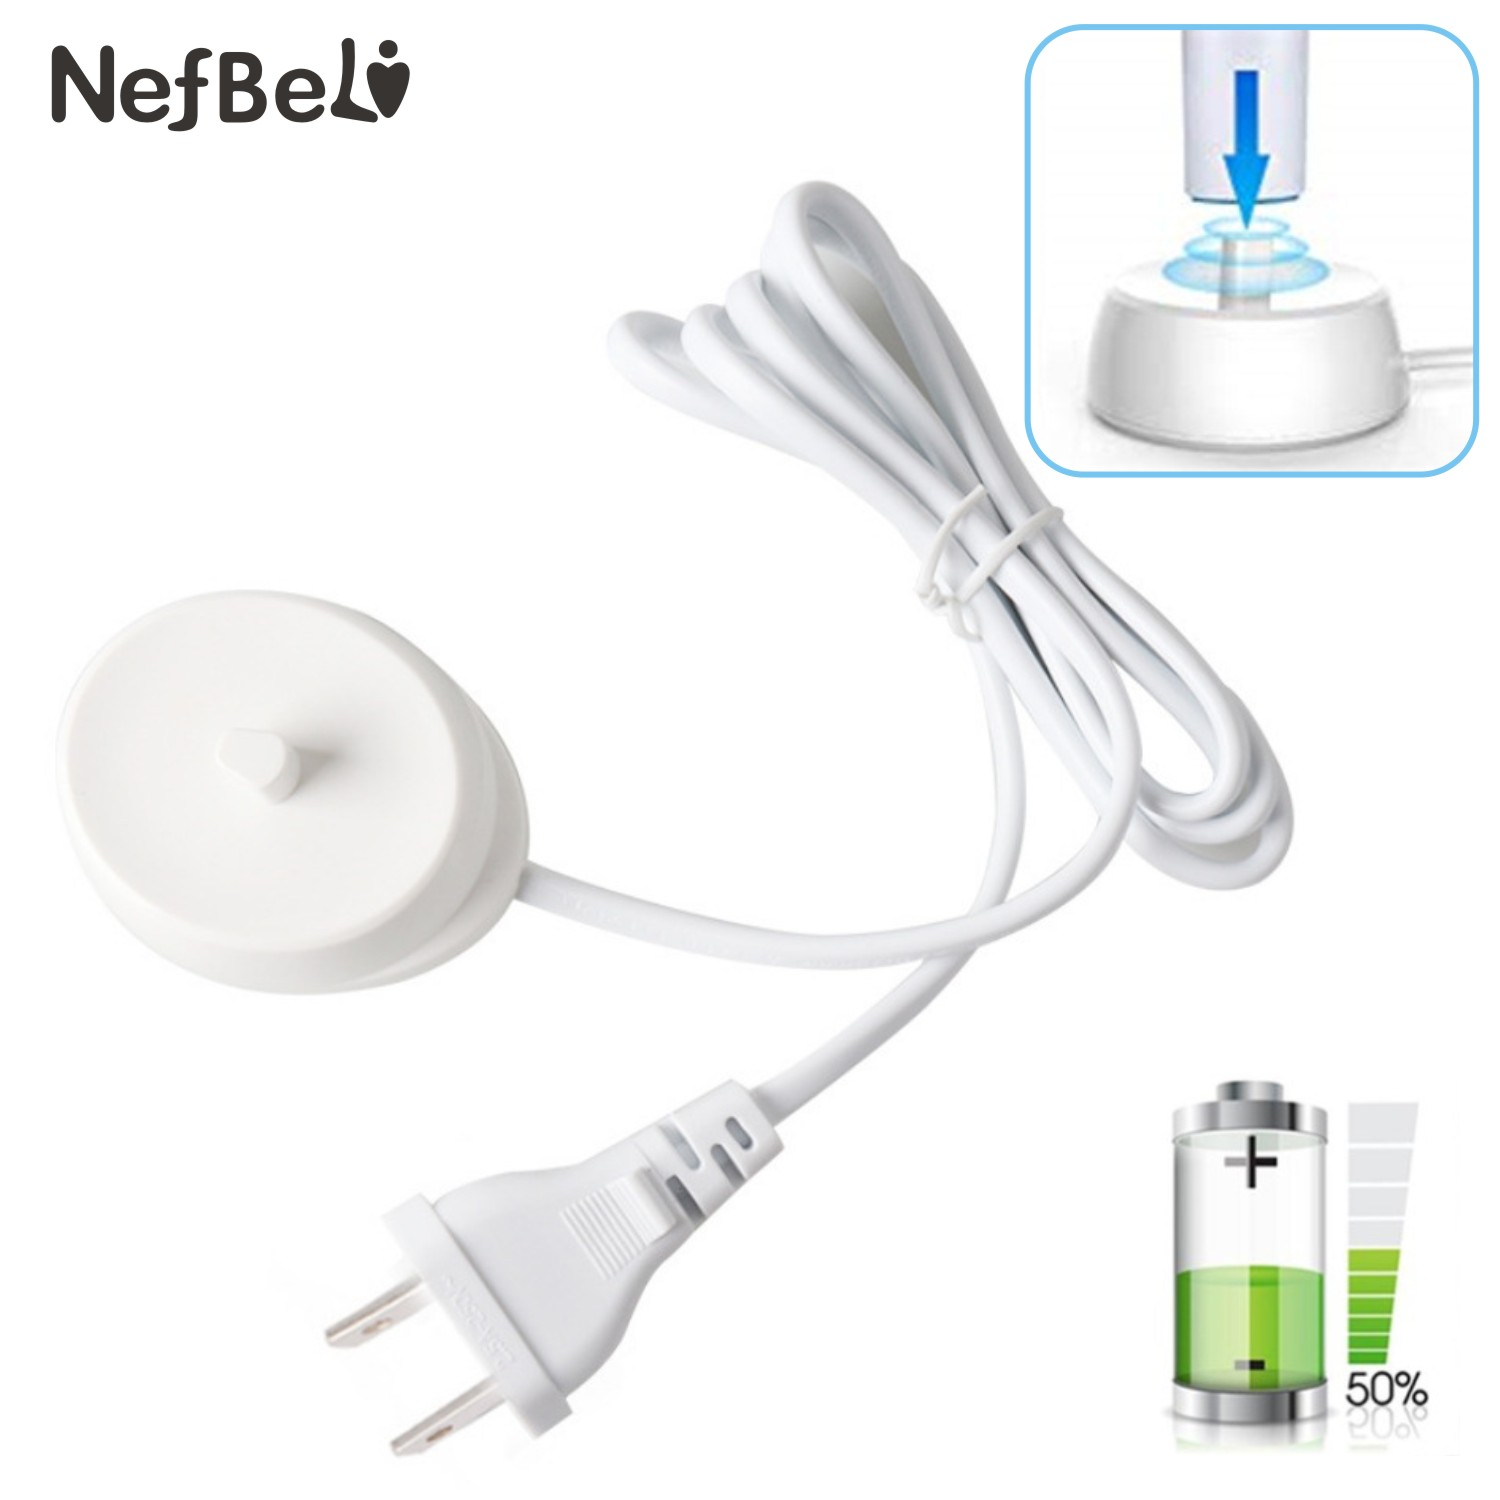 Replacement Electric Toothbrush Charger Model 3757 110-240V Suitable Oral b D12 D16 D20 D29 D34 1000 3000 4000 Charging Cradle image